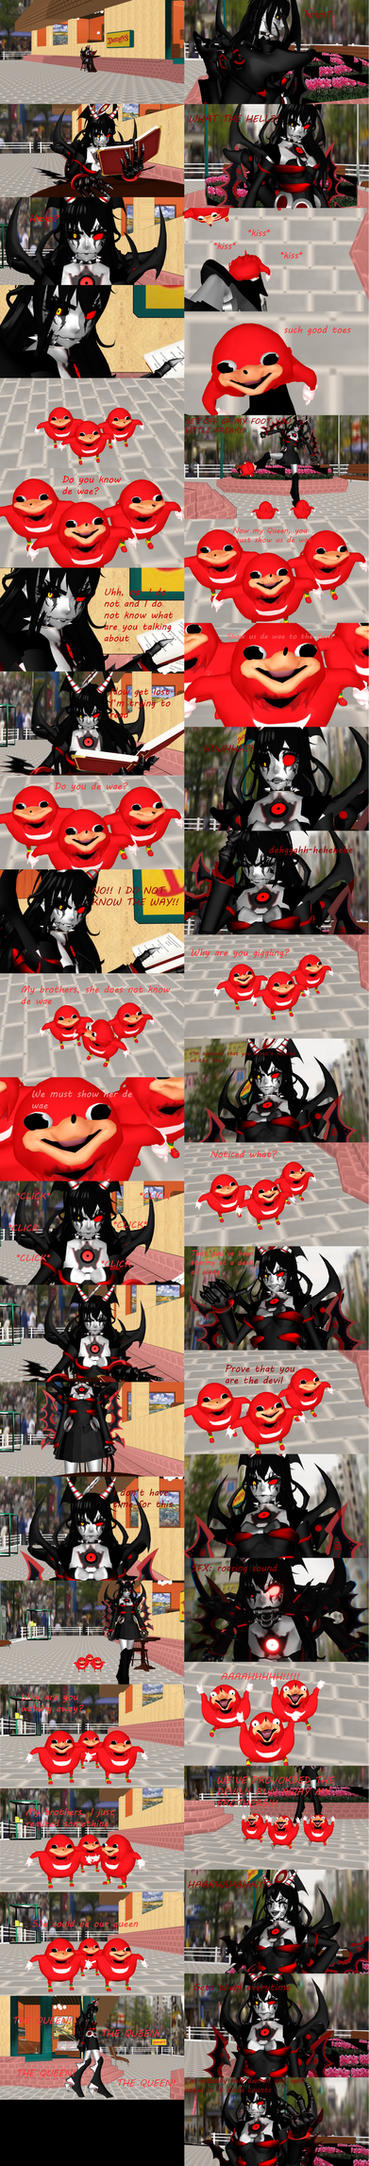 [MMD] Ugandan Knuckles meets Mecha Alice by DrStinger